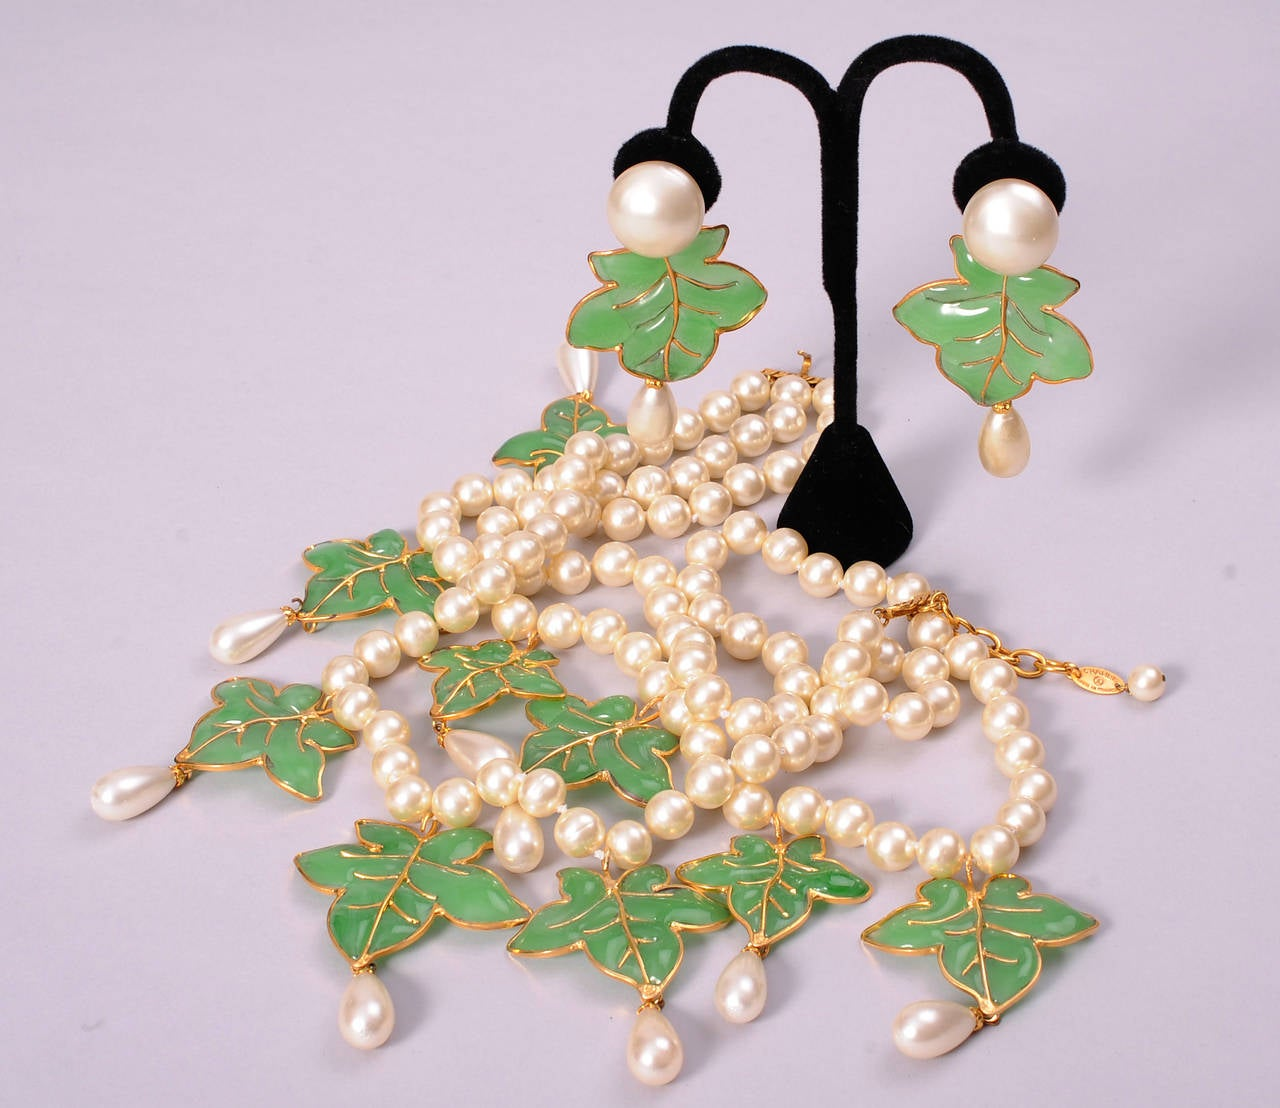 Chanel Signed Haute Couture Gripoix Leaves and Pearl Necklace & Earrings 2